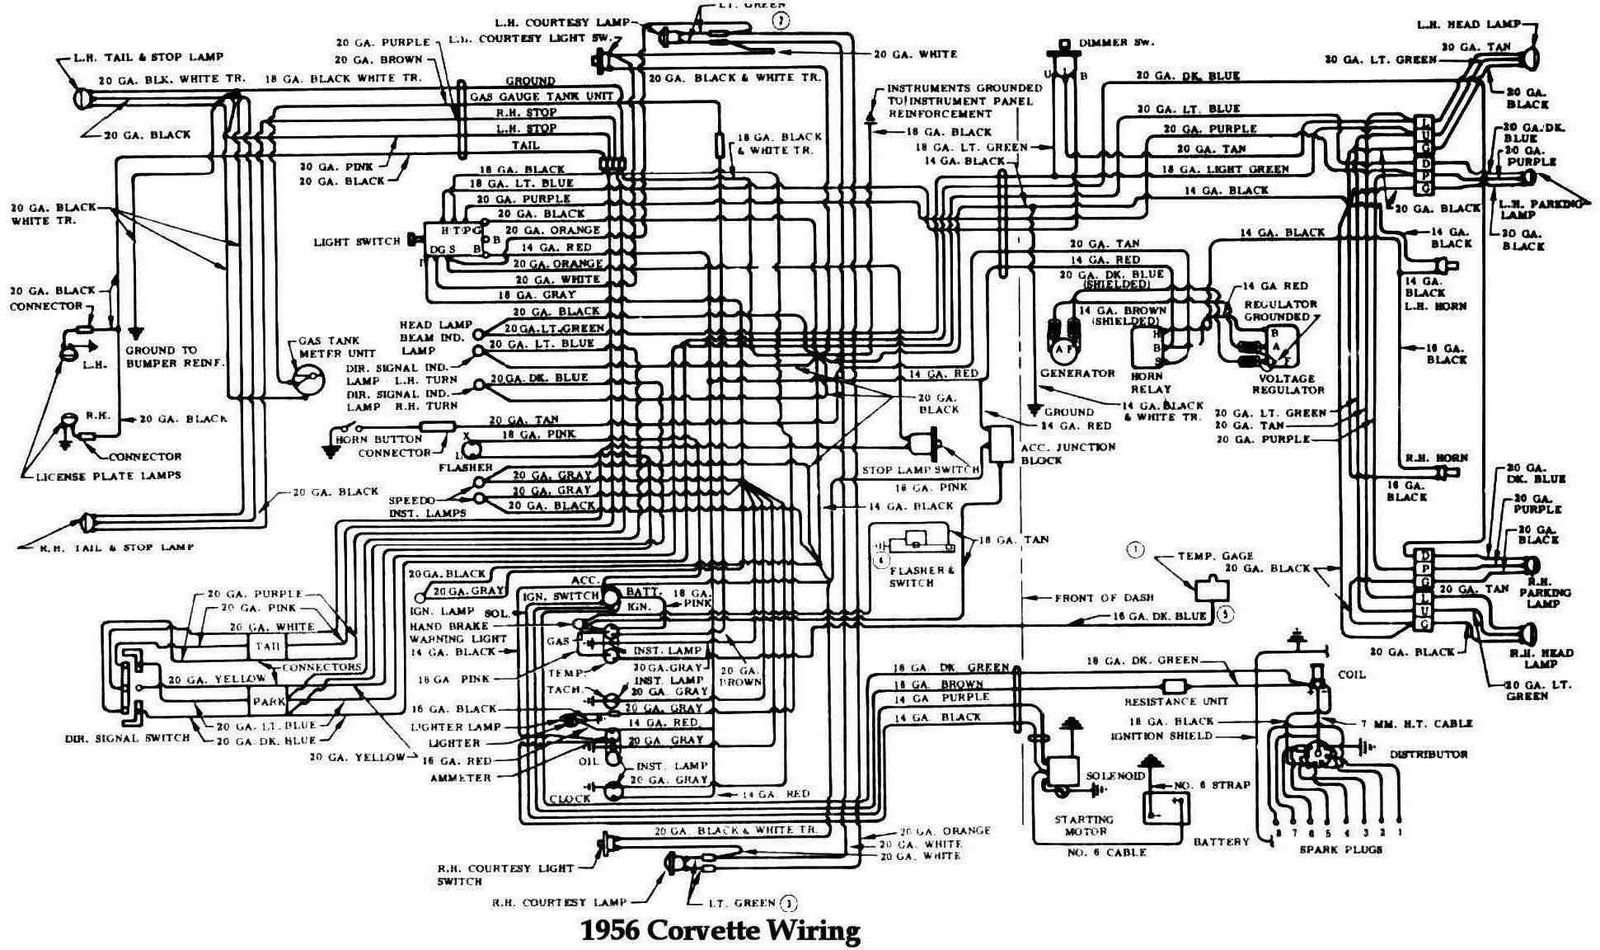 Ti 1966 Corvette Wiring Diagram Best Secret 66 Chevelle Pdf For Powerking Co Harness